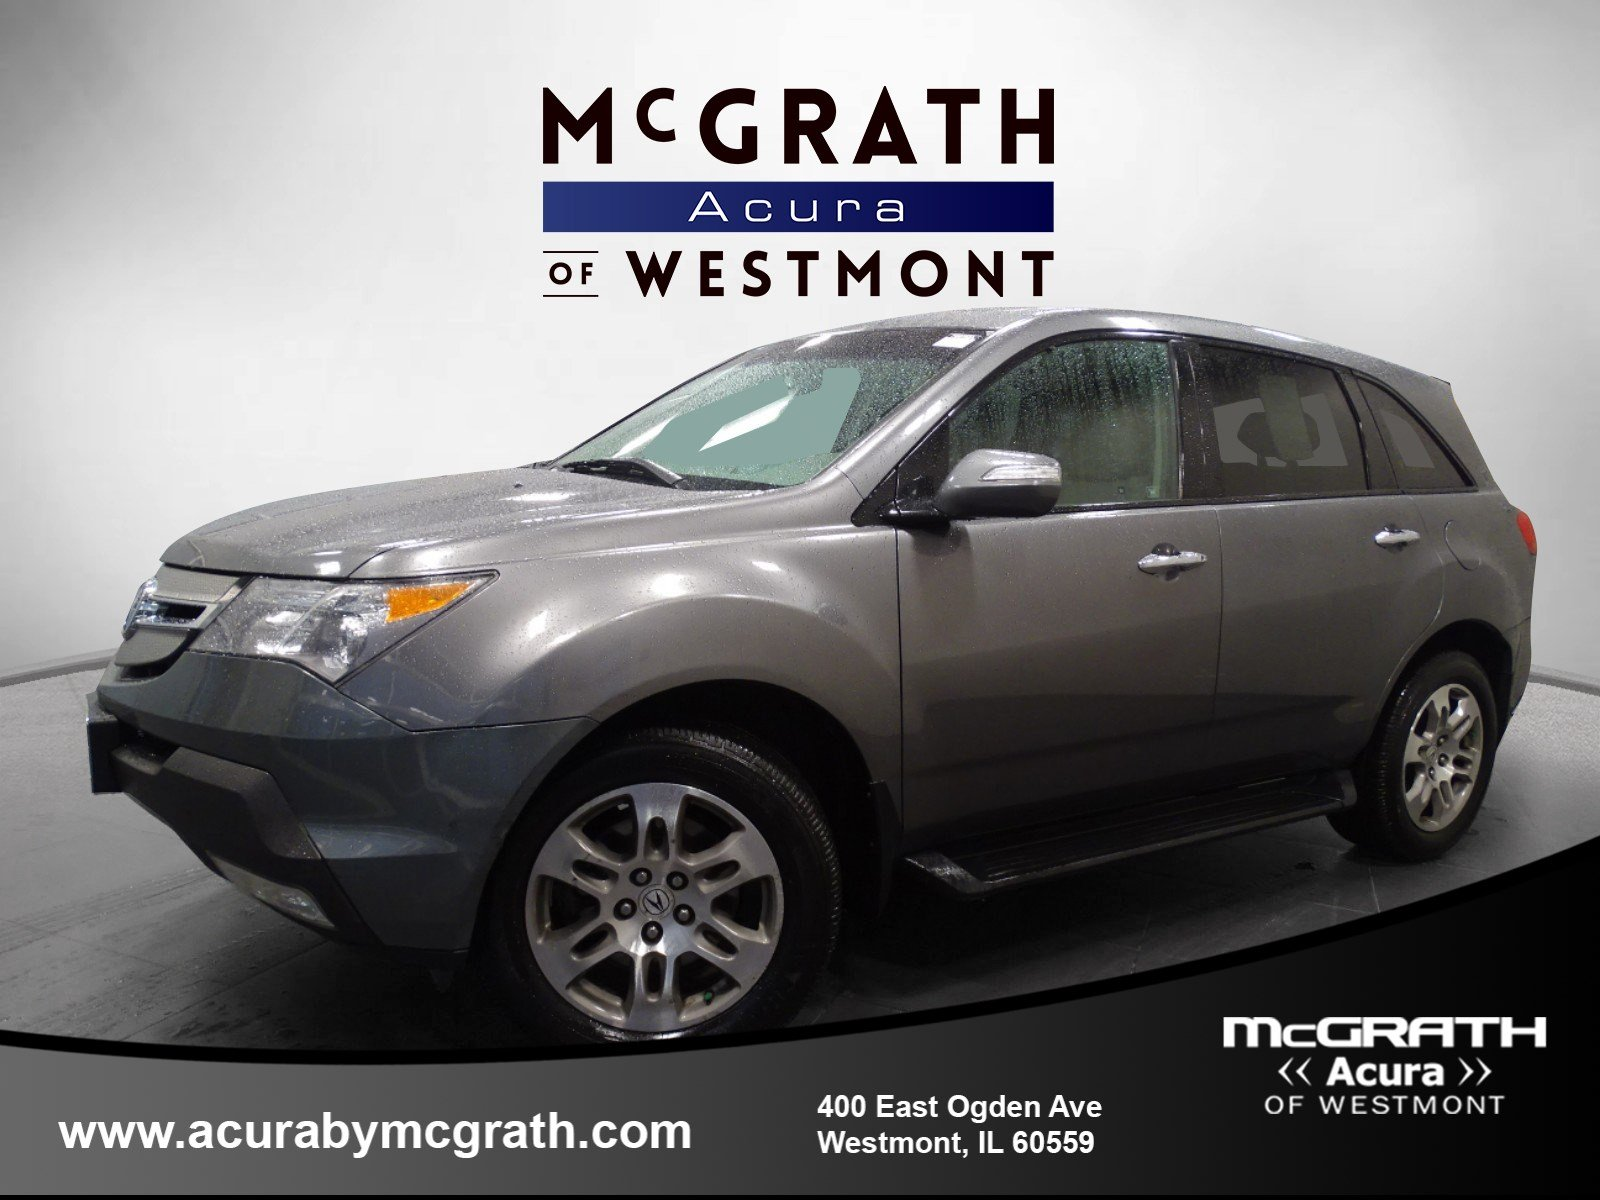 pre owned 2008 acura mdx 3 7l sport utility in westmont pb9162a rh acurabymcgrath com